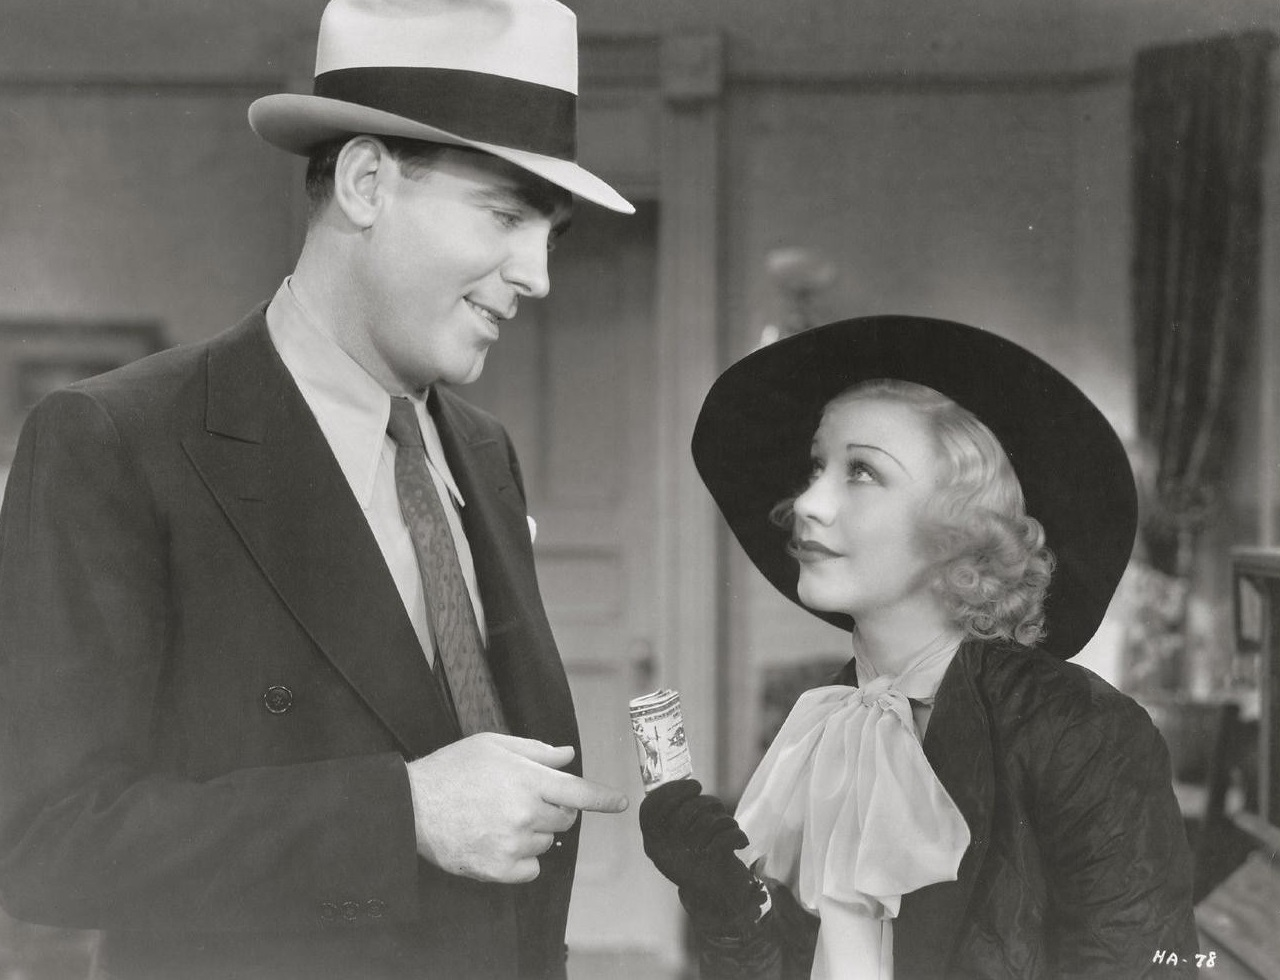 Ginger Rogers and Pat O'Brien in Twenty Million Sweethearts (1934)